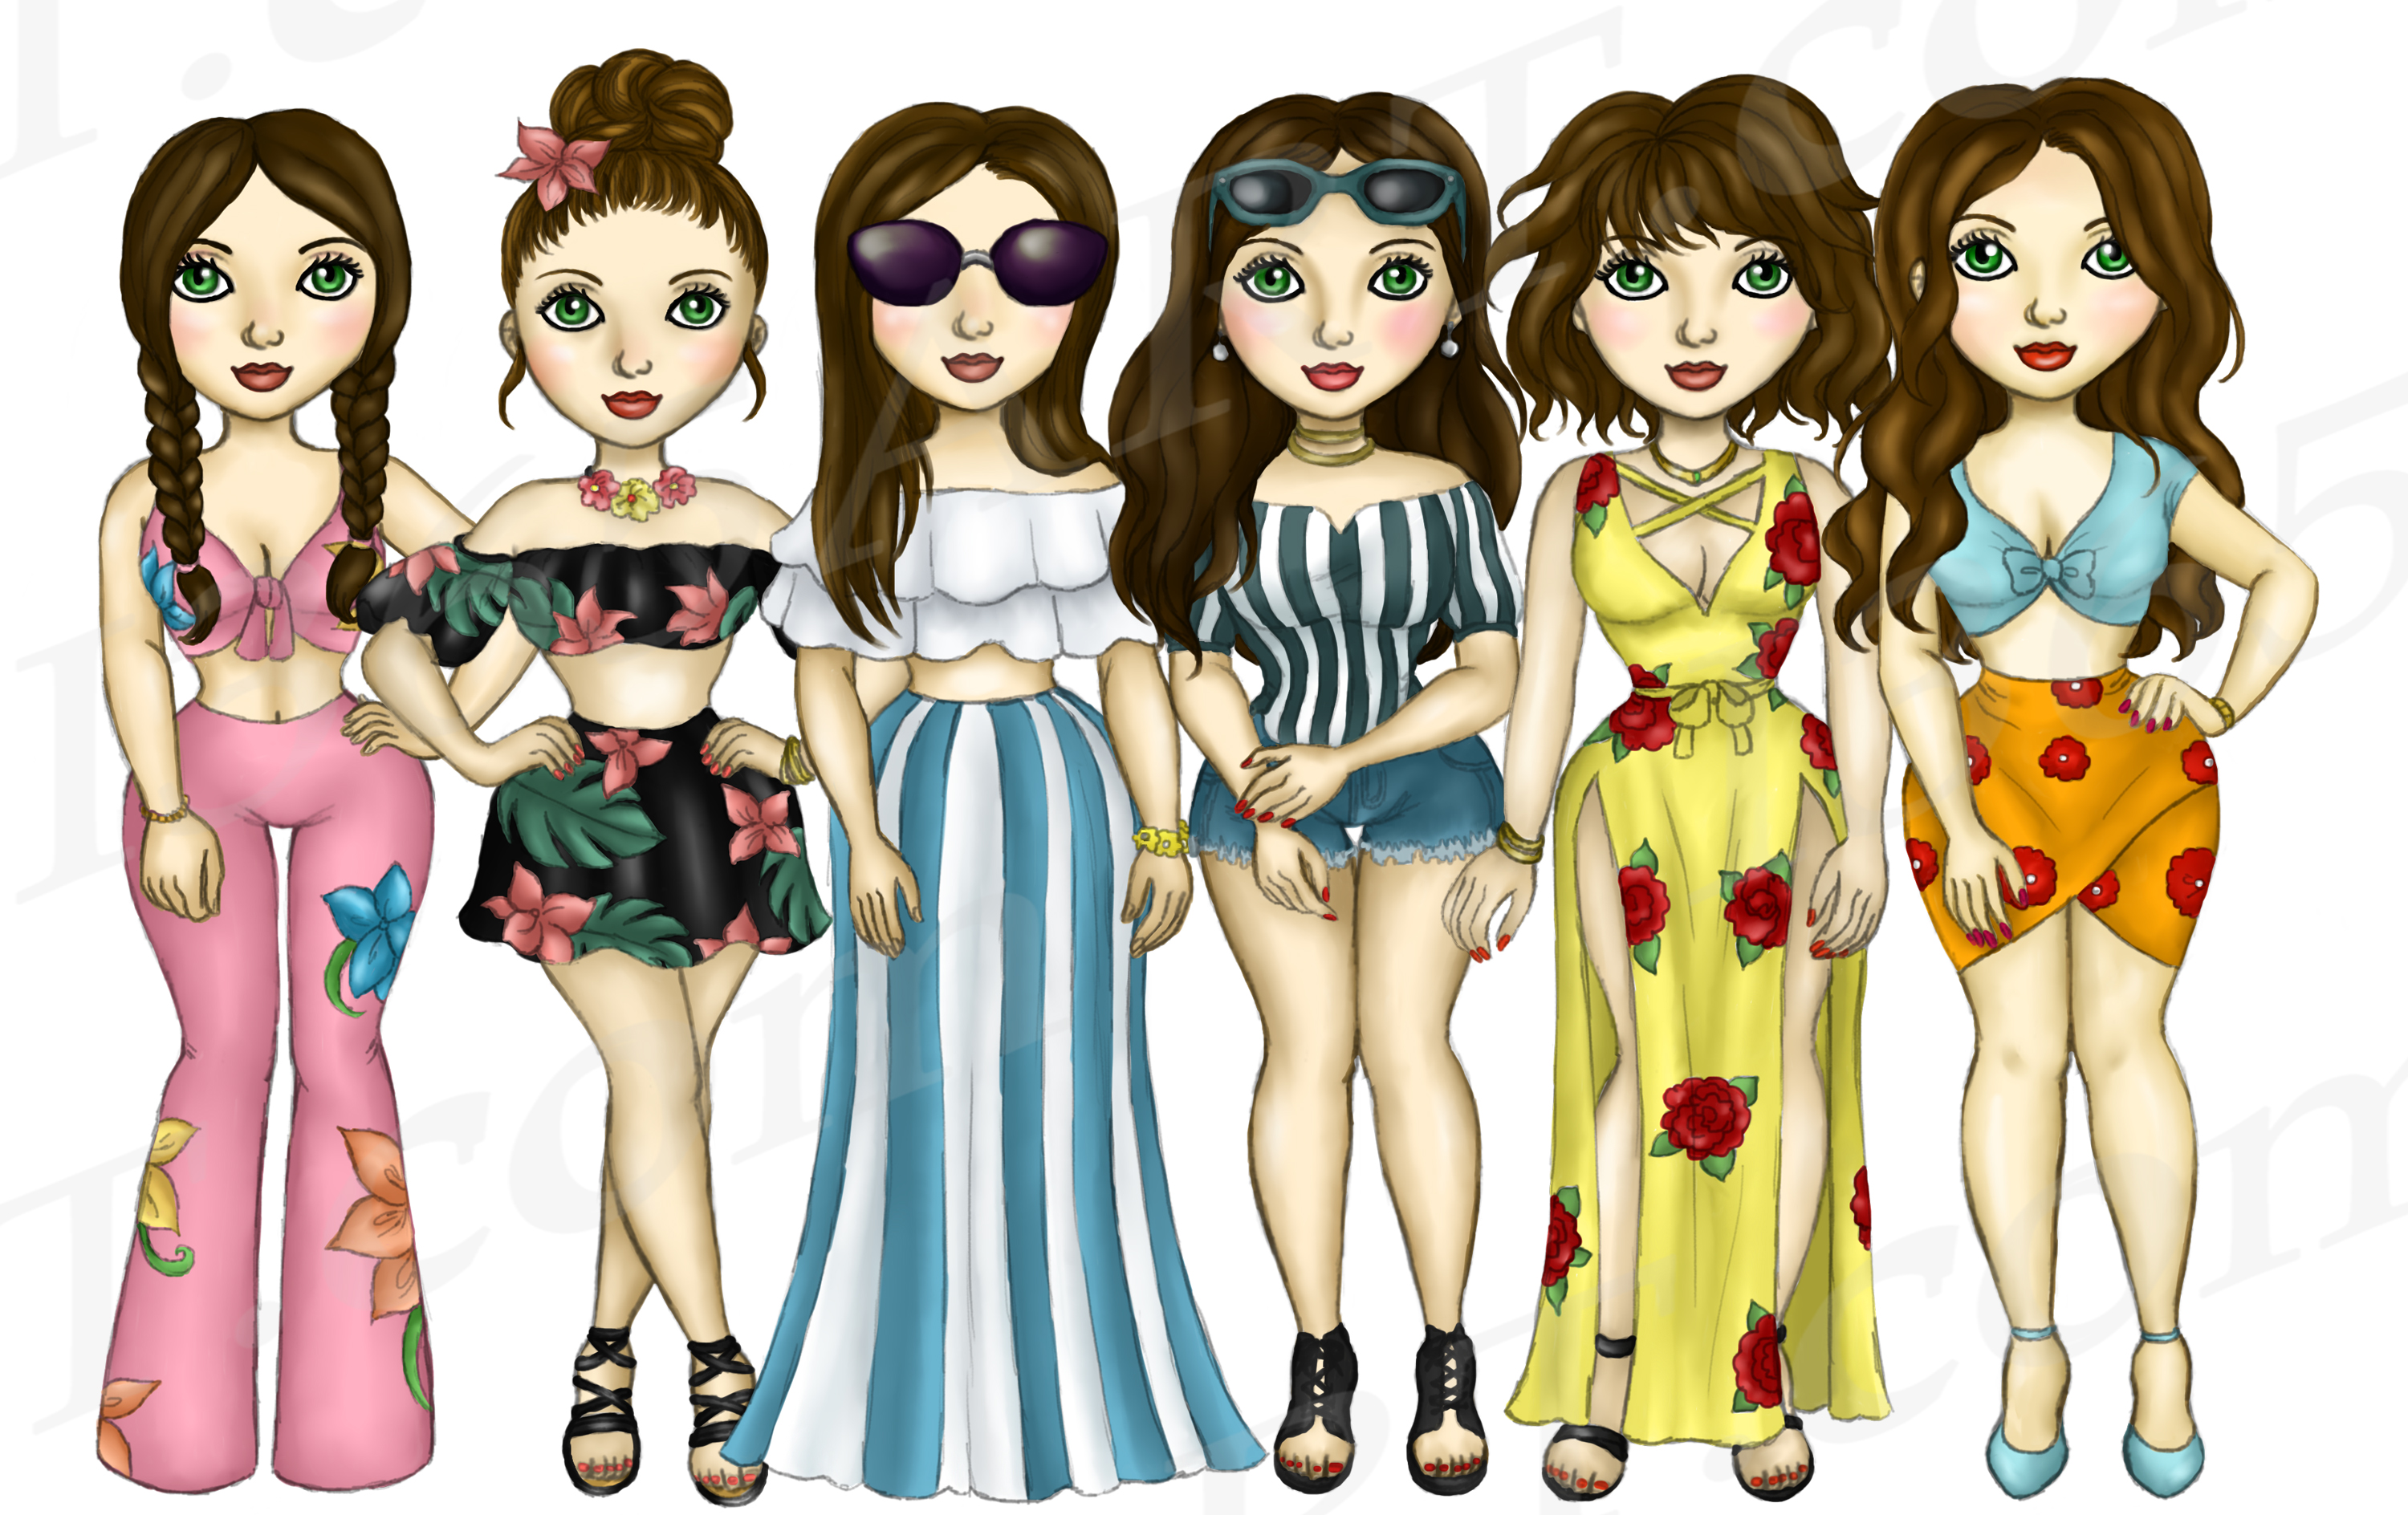 Summer Fashion Girls Planner Clipart, Fashion Girls PNG example image 2